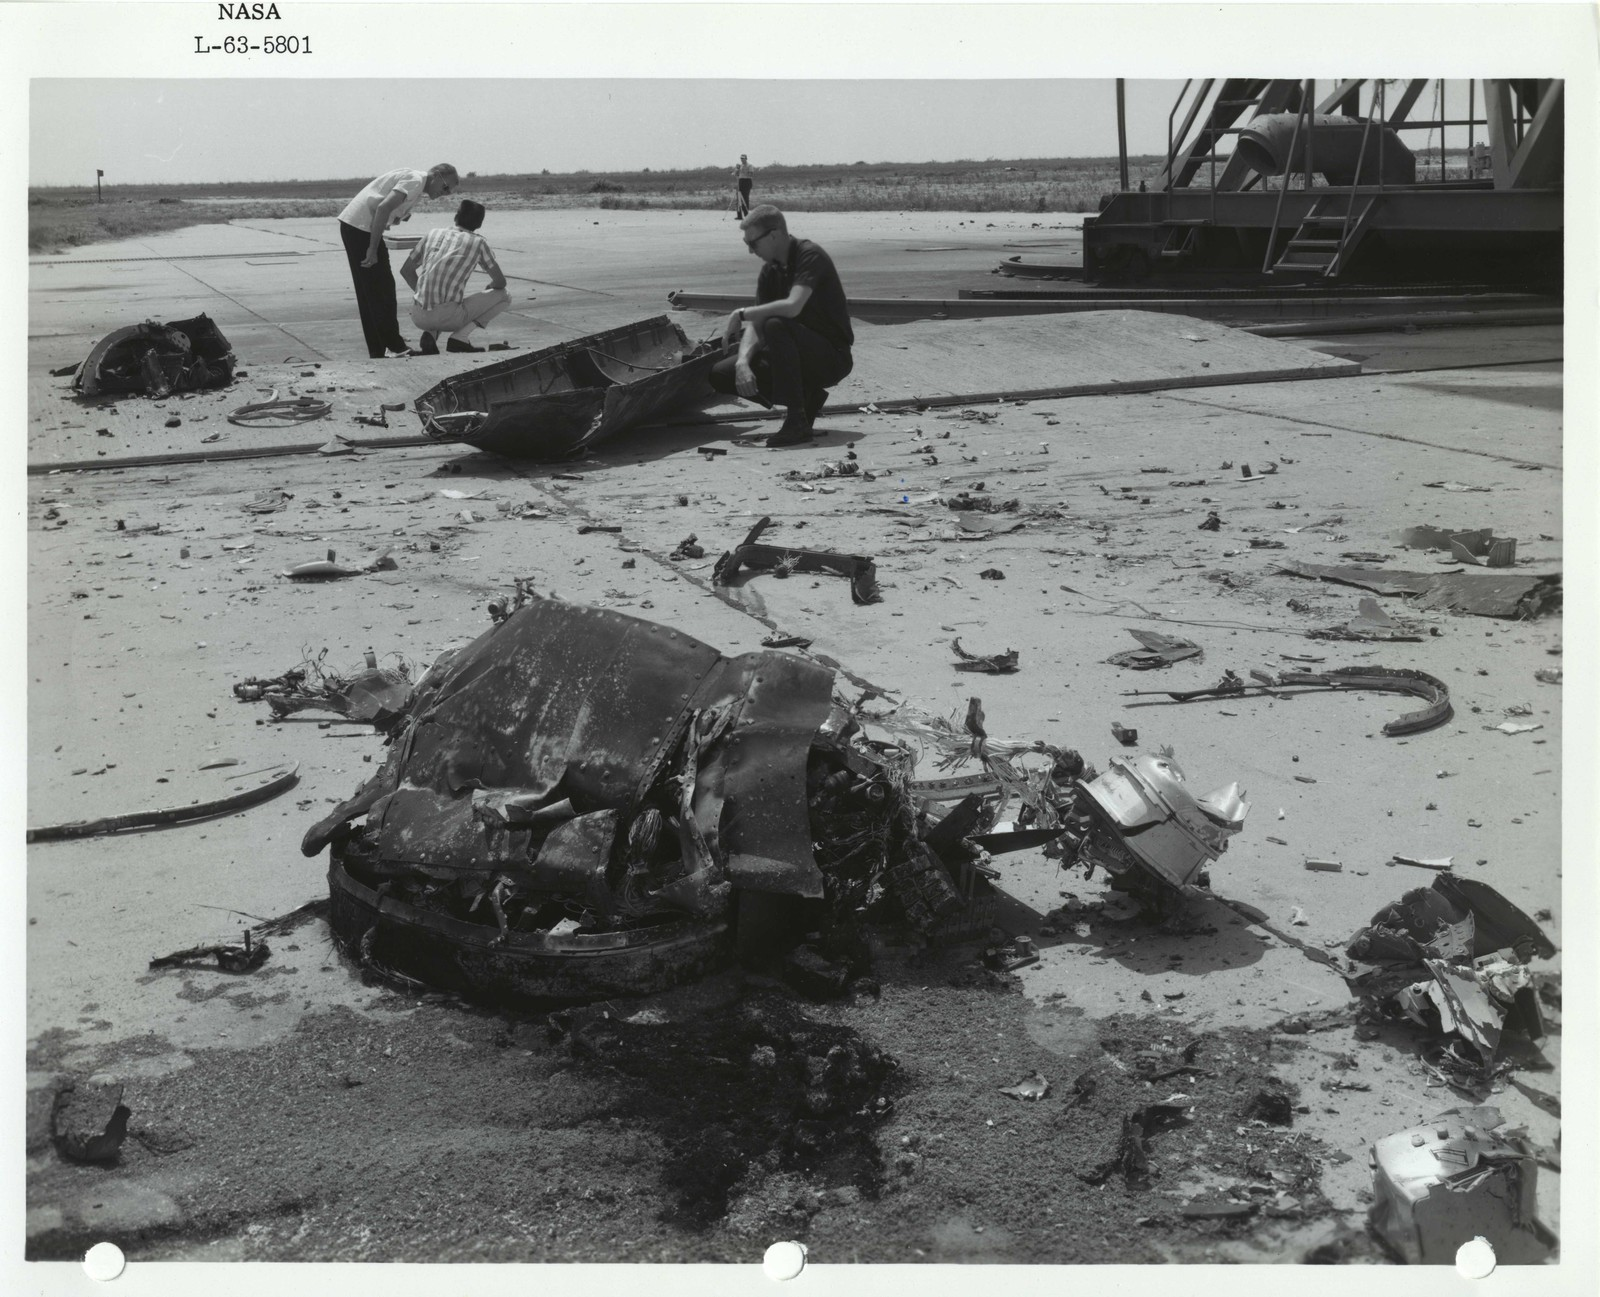 Photograph of Three Scientists Examining Debris after a Launch at the Wallops Island Launch Area in Virginia